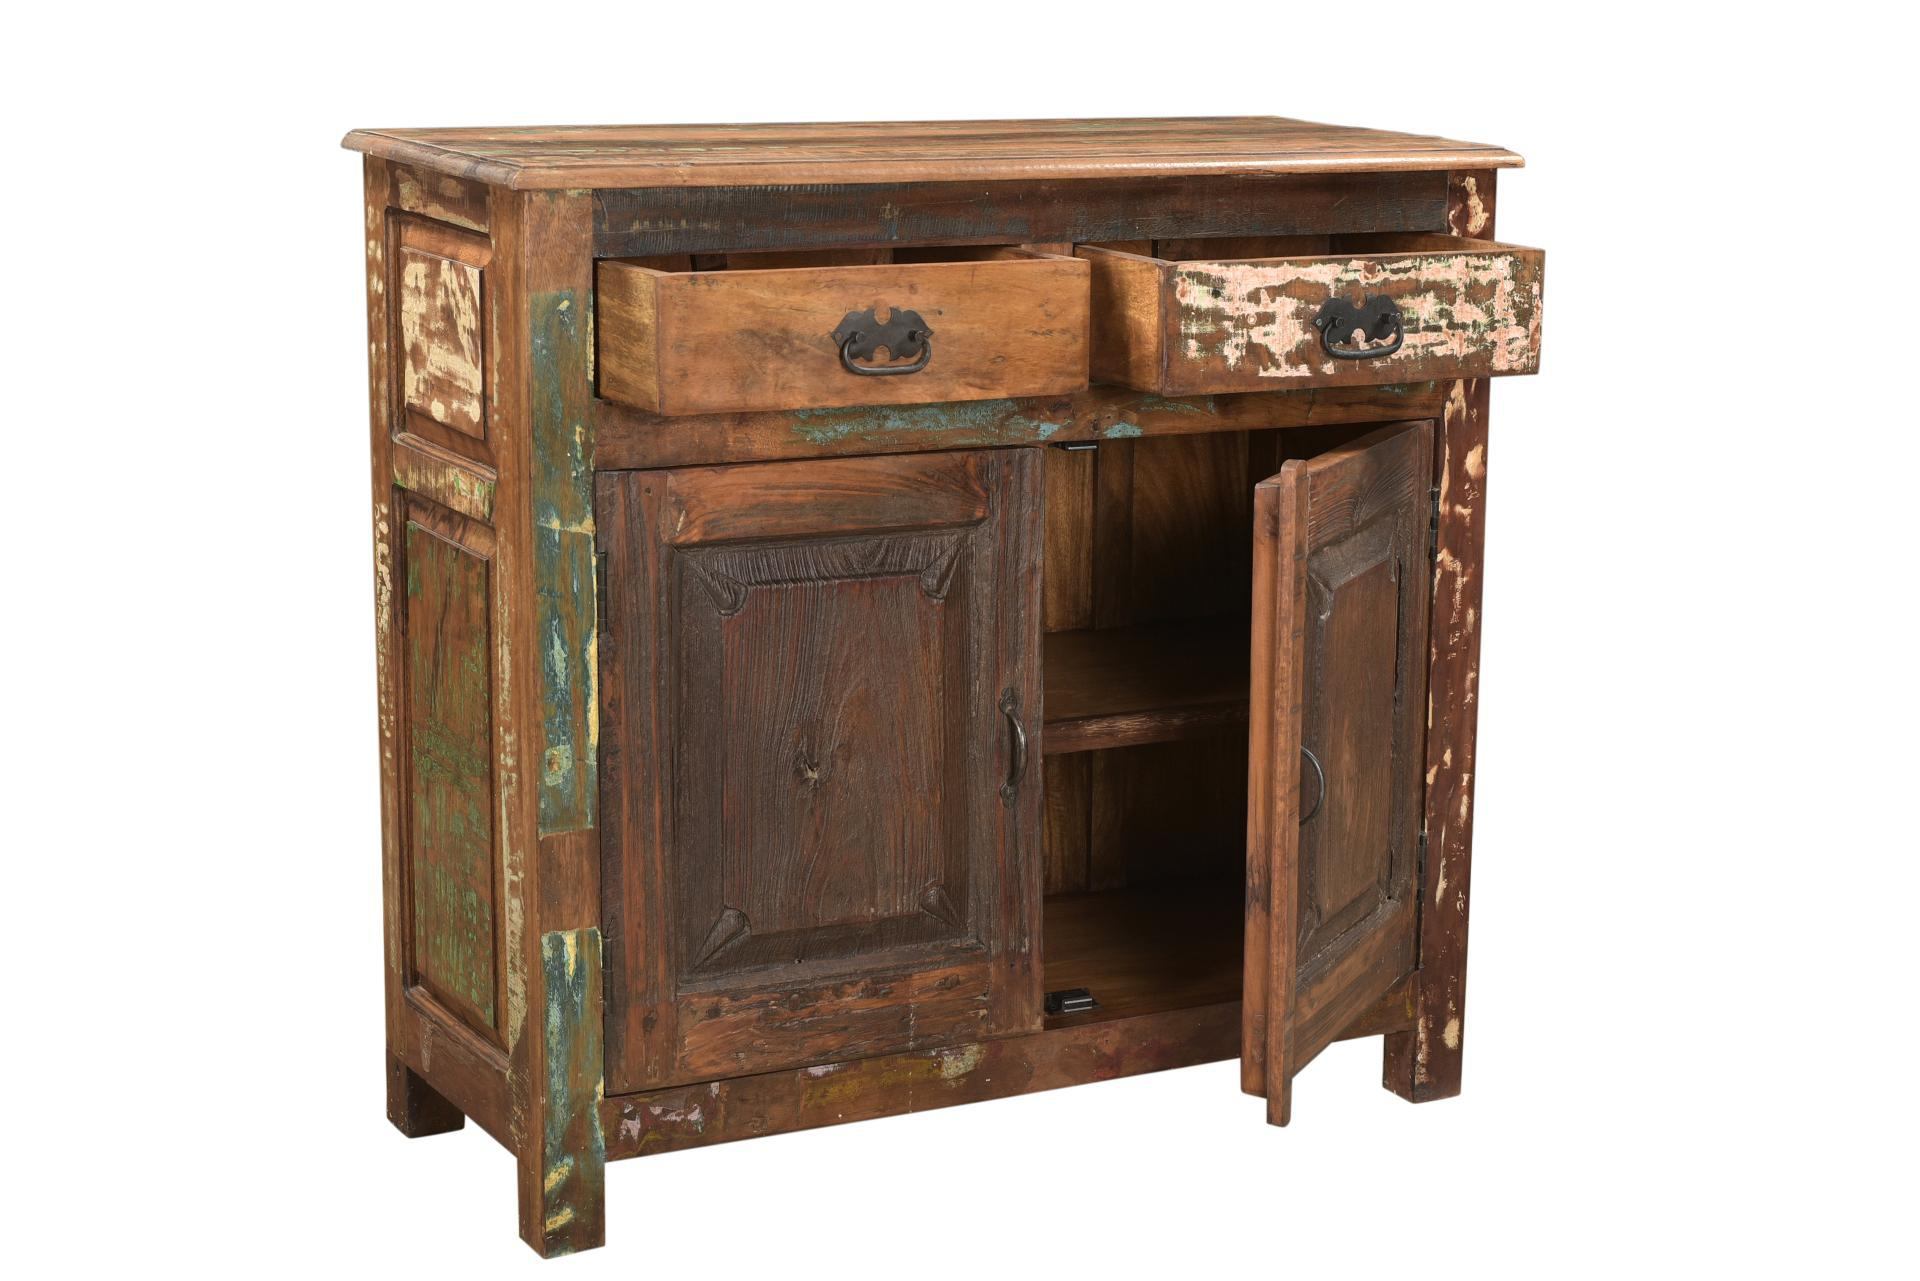 Rustic Two Drawer Rustic Mango Wood Cabinet For Sale   Image 3 Of 7